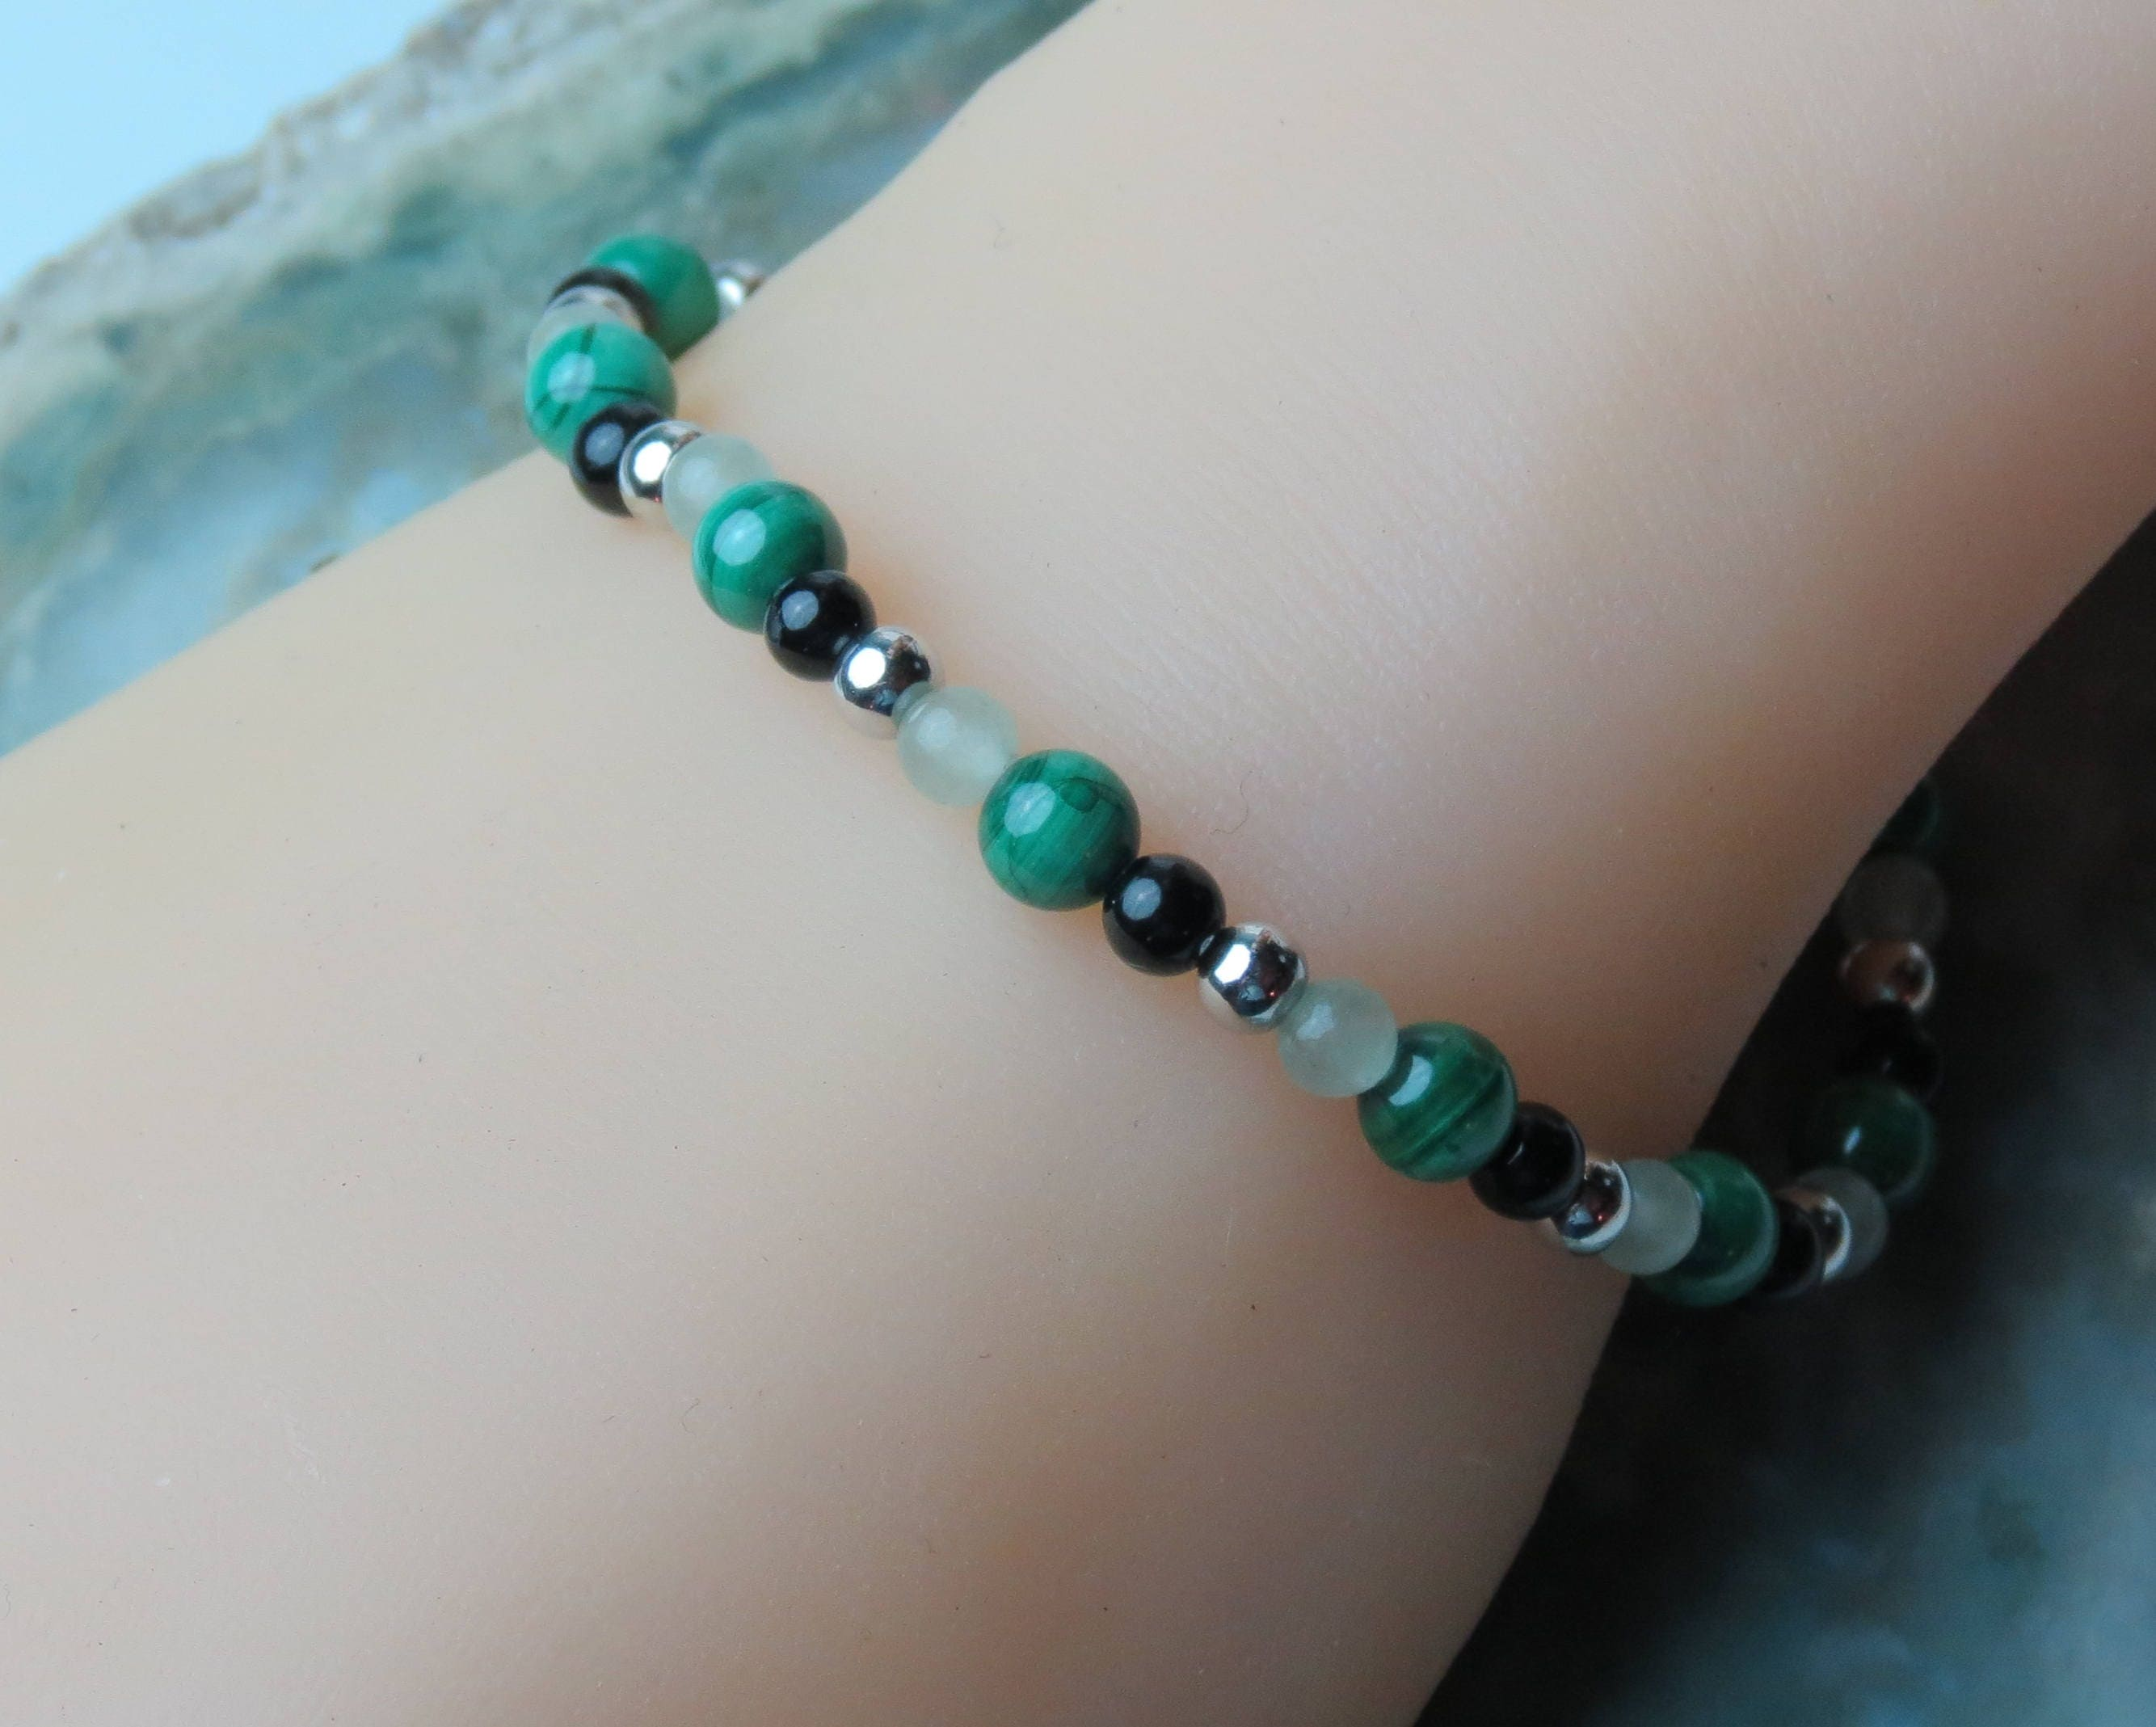 stone charm yoga bracelet elephant description il chrysocolla euwy listing fullxfull with green